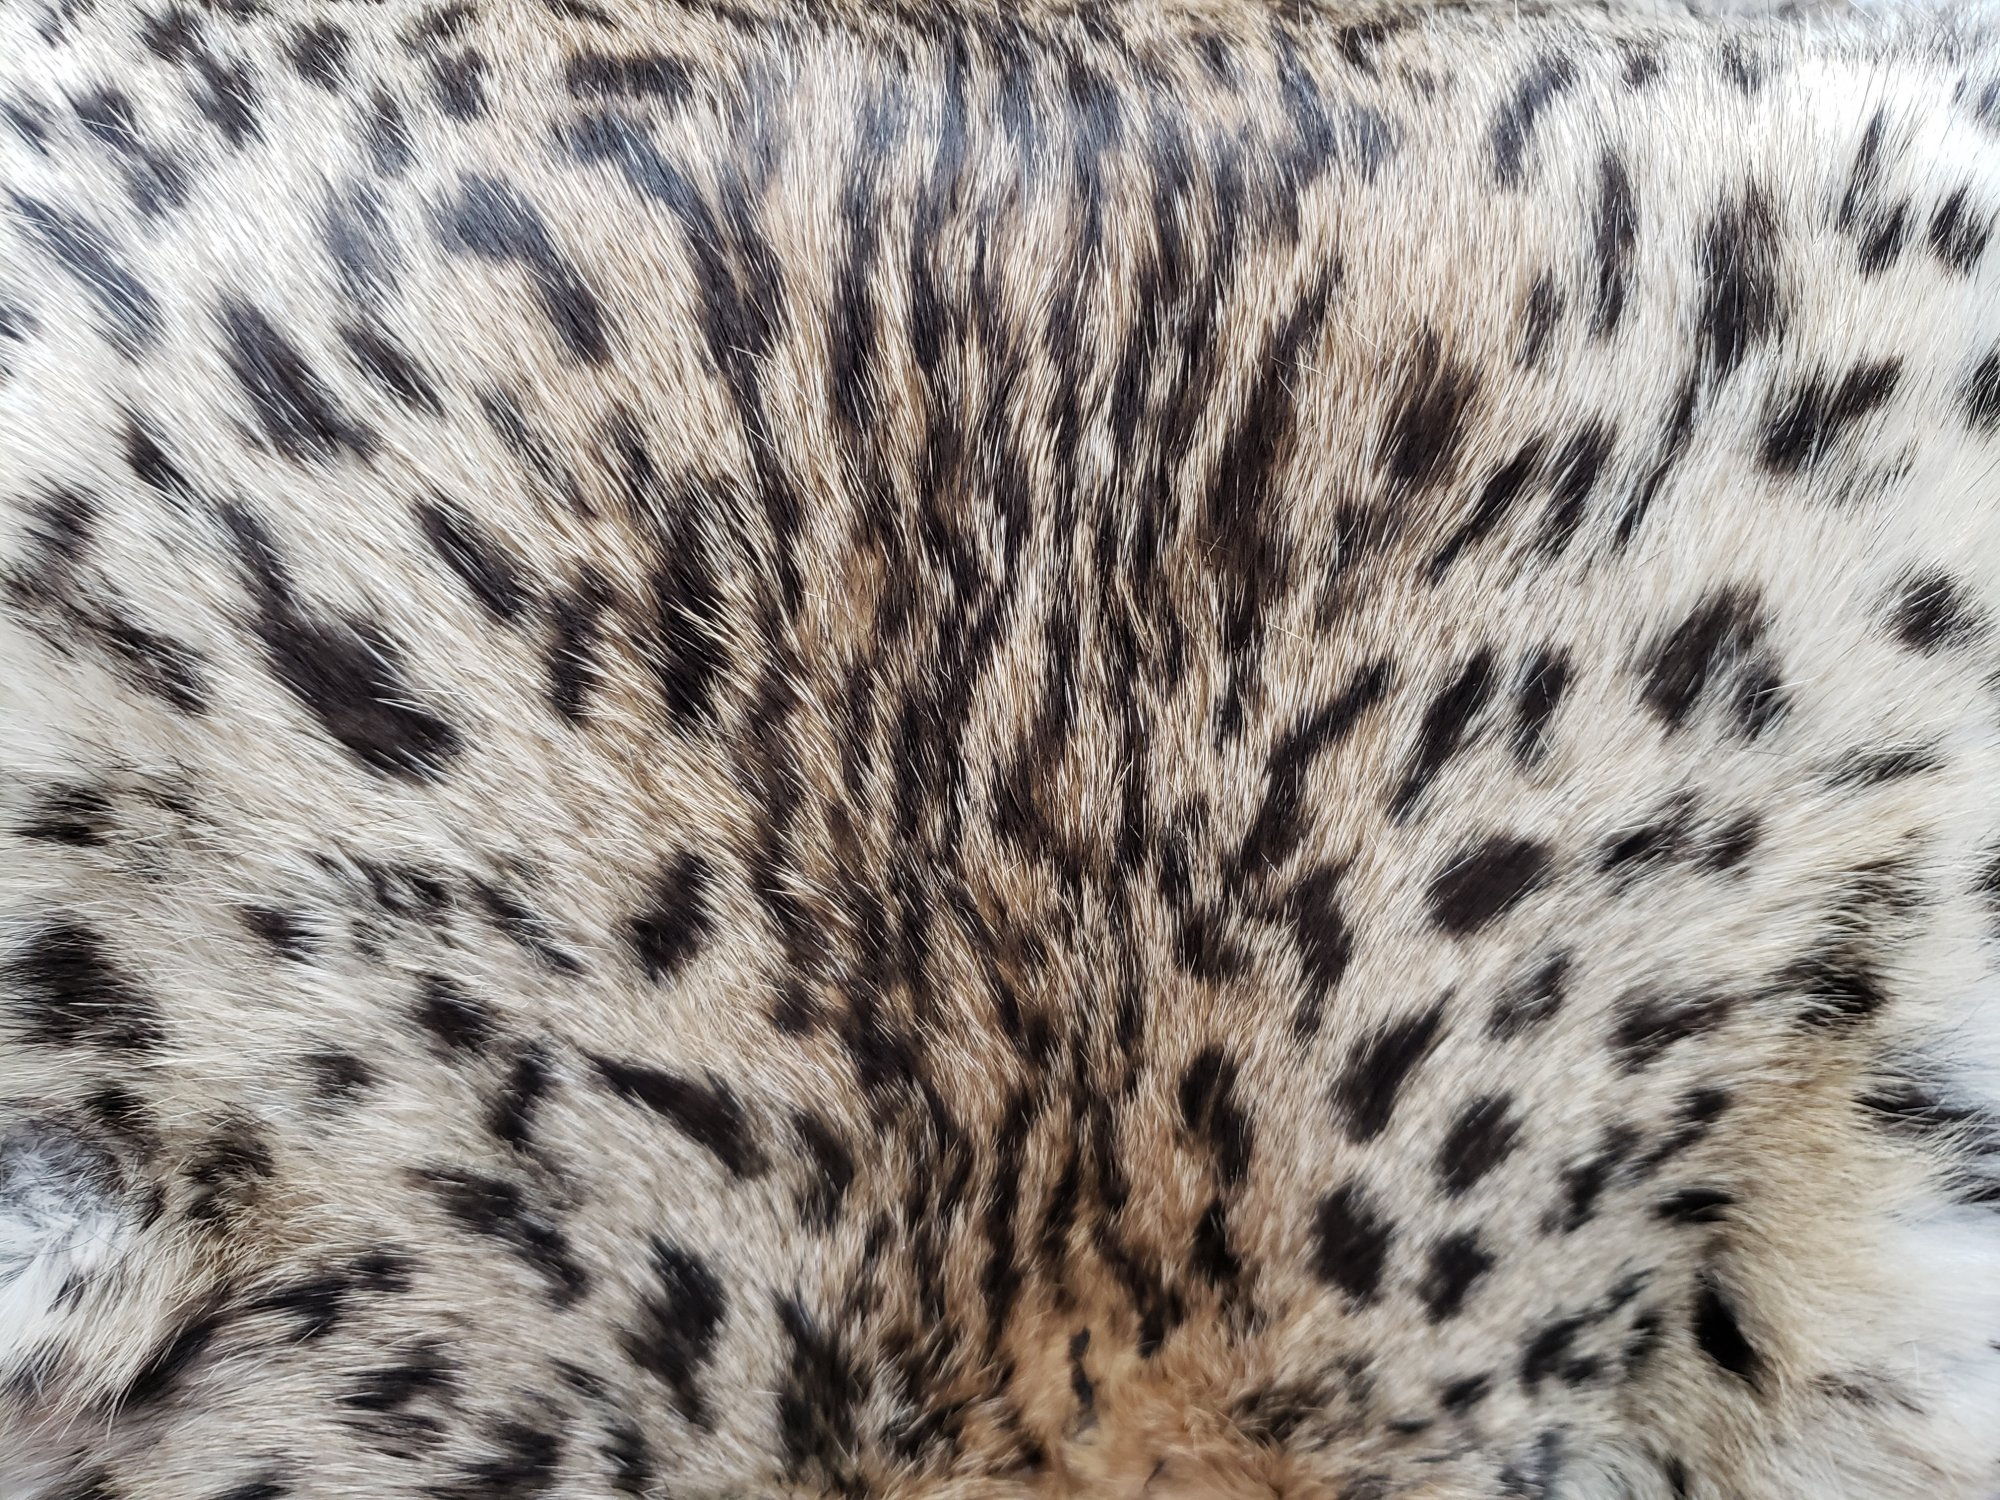 Rabbit Fur Pelt - Dyed Ocelot Print